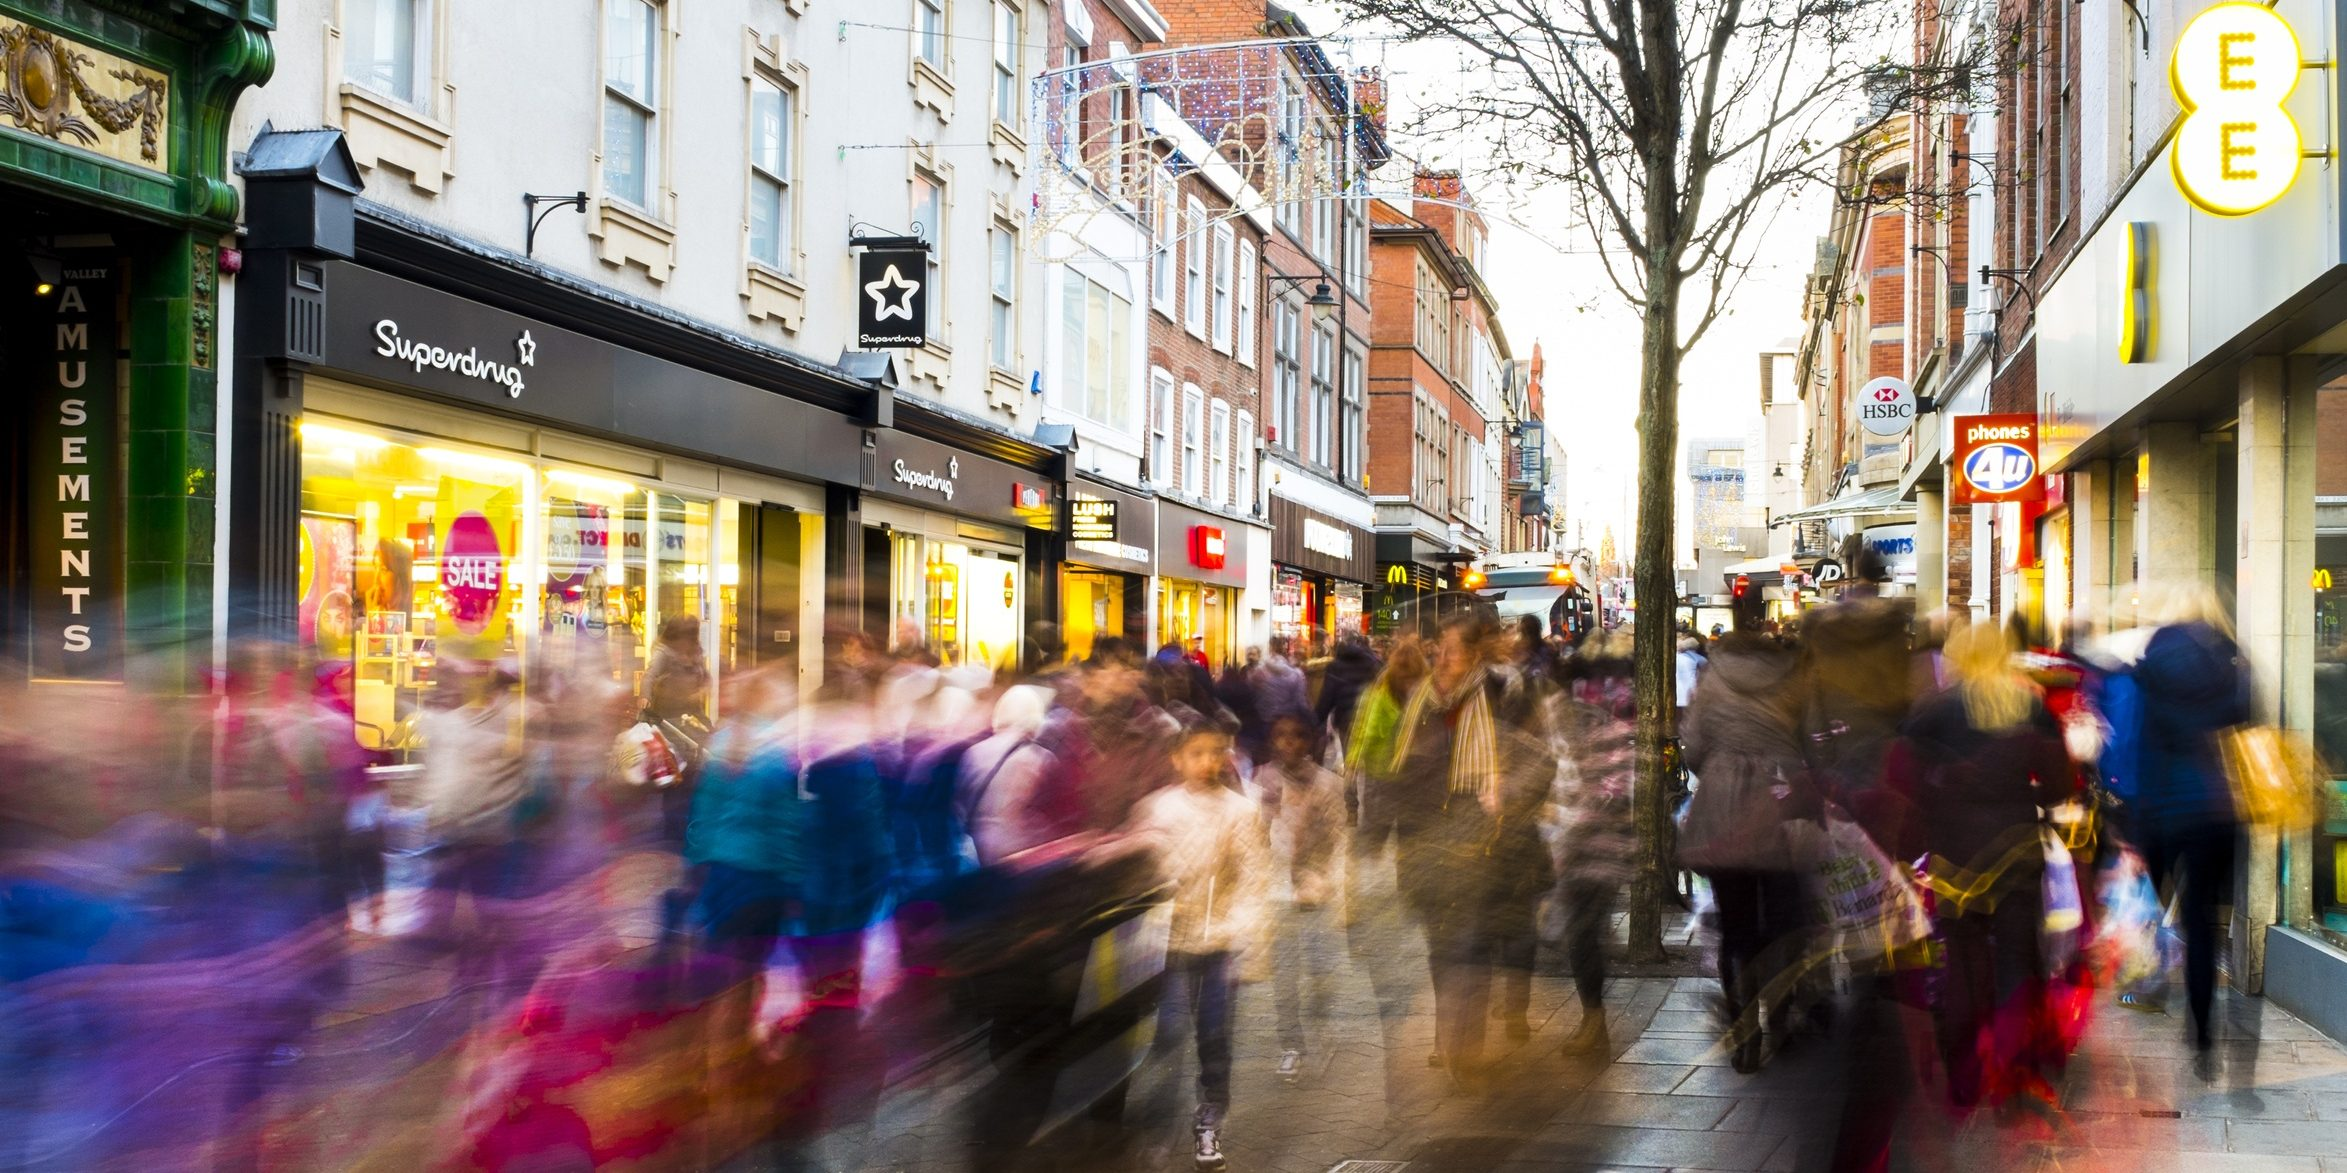 High Street Businesses That Have Grown in the Past 5 Years